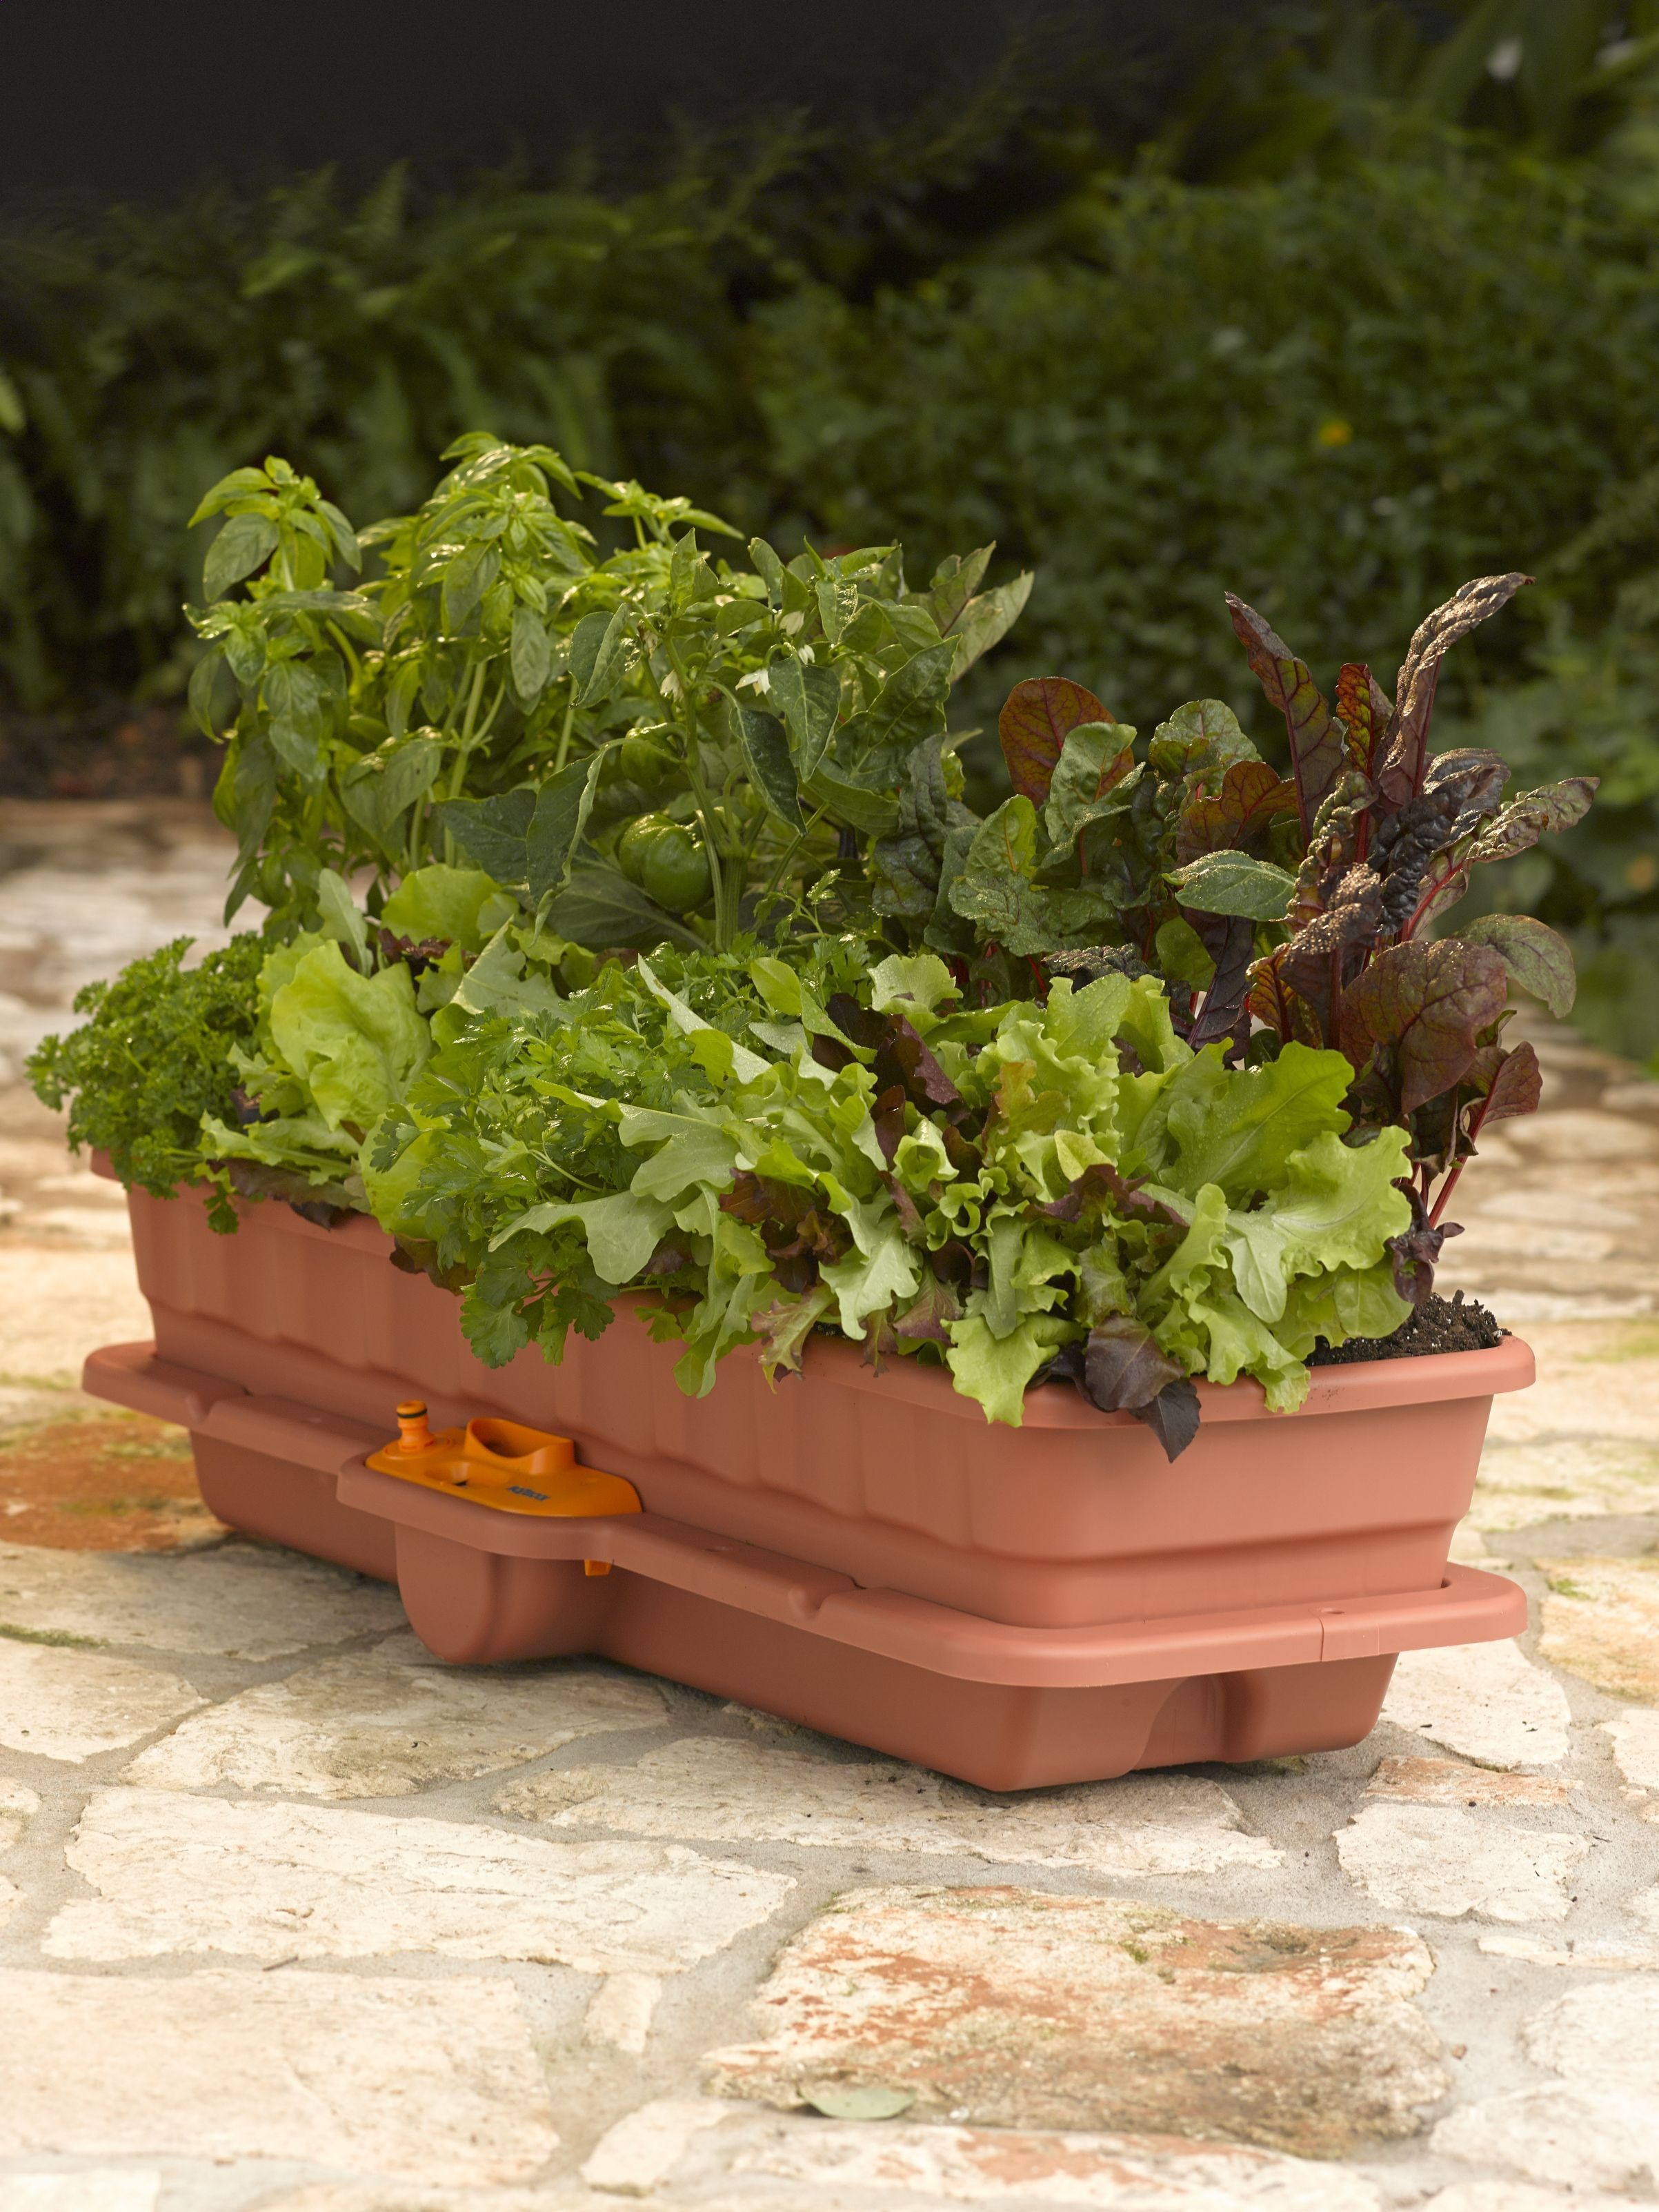 Self Watering Planter For Flowers Vegetables Gardener S Supply Other Photos Show How